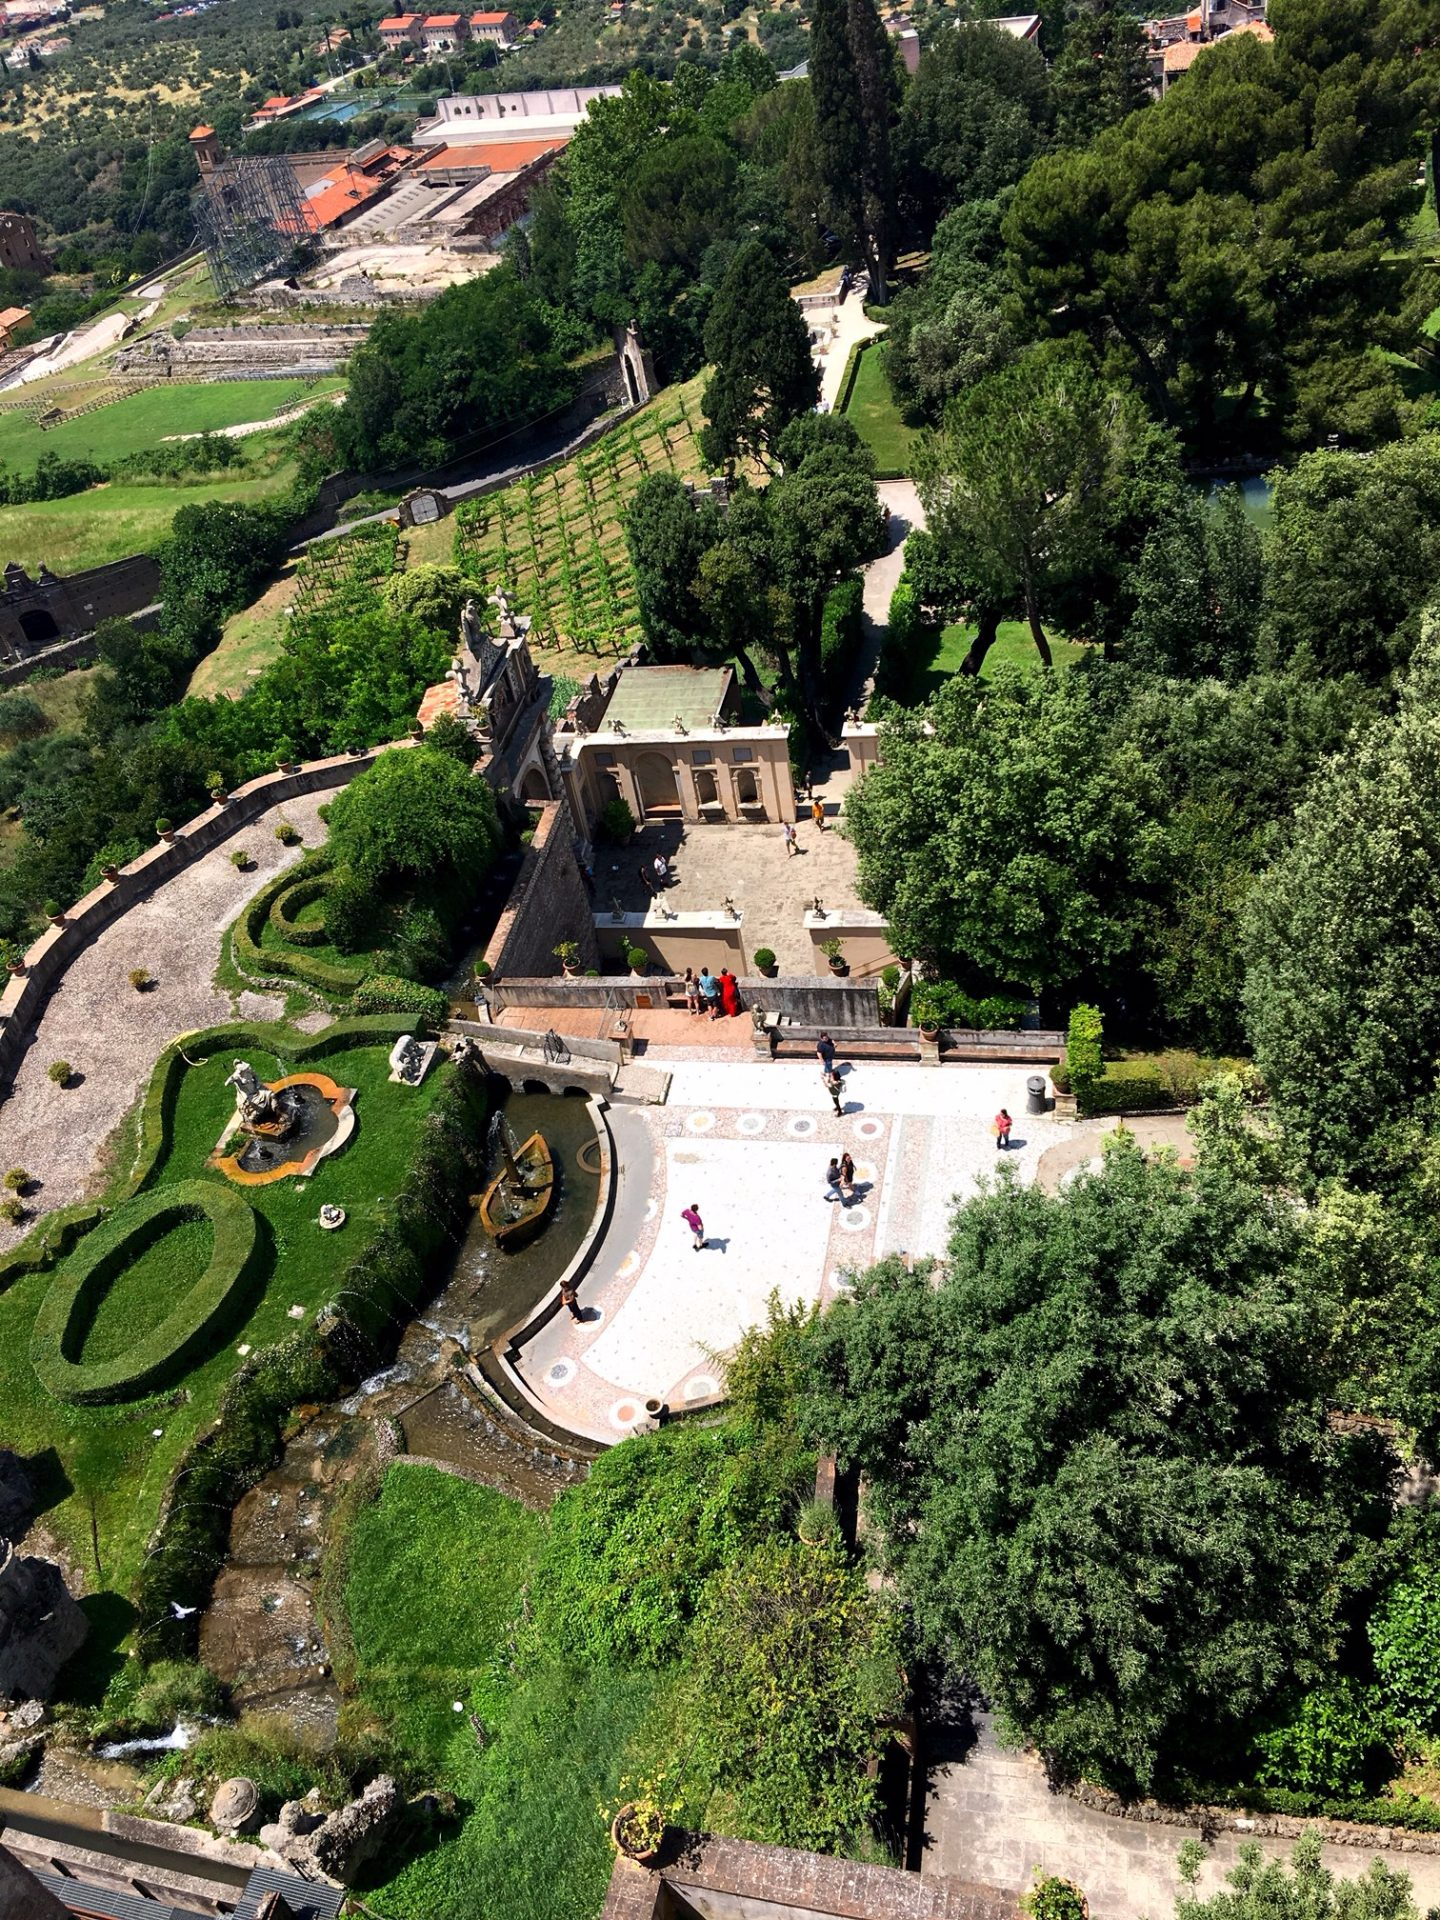 view of the gardens of Villa d'Este in Tivoli